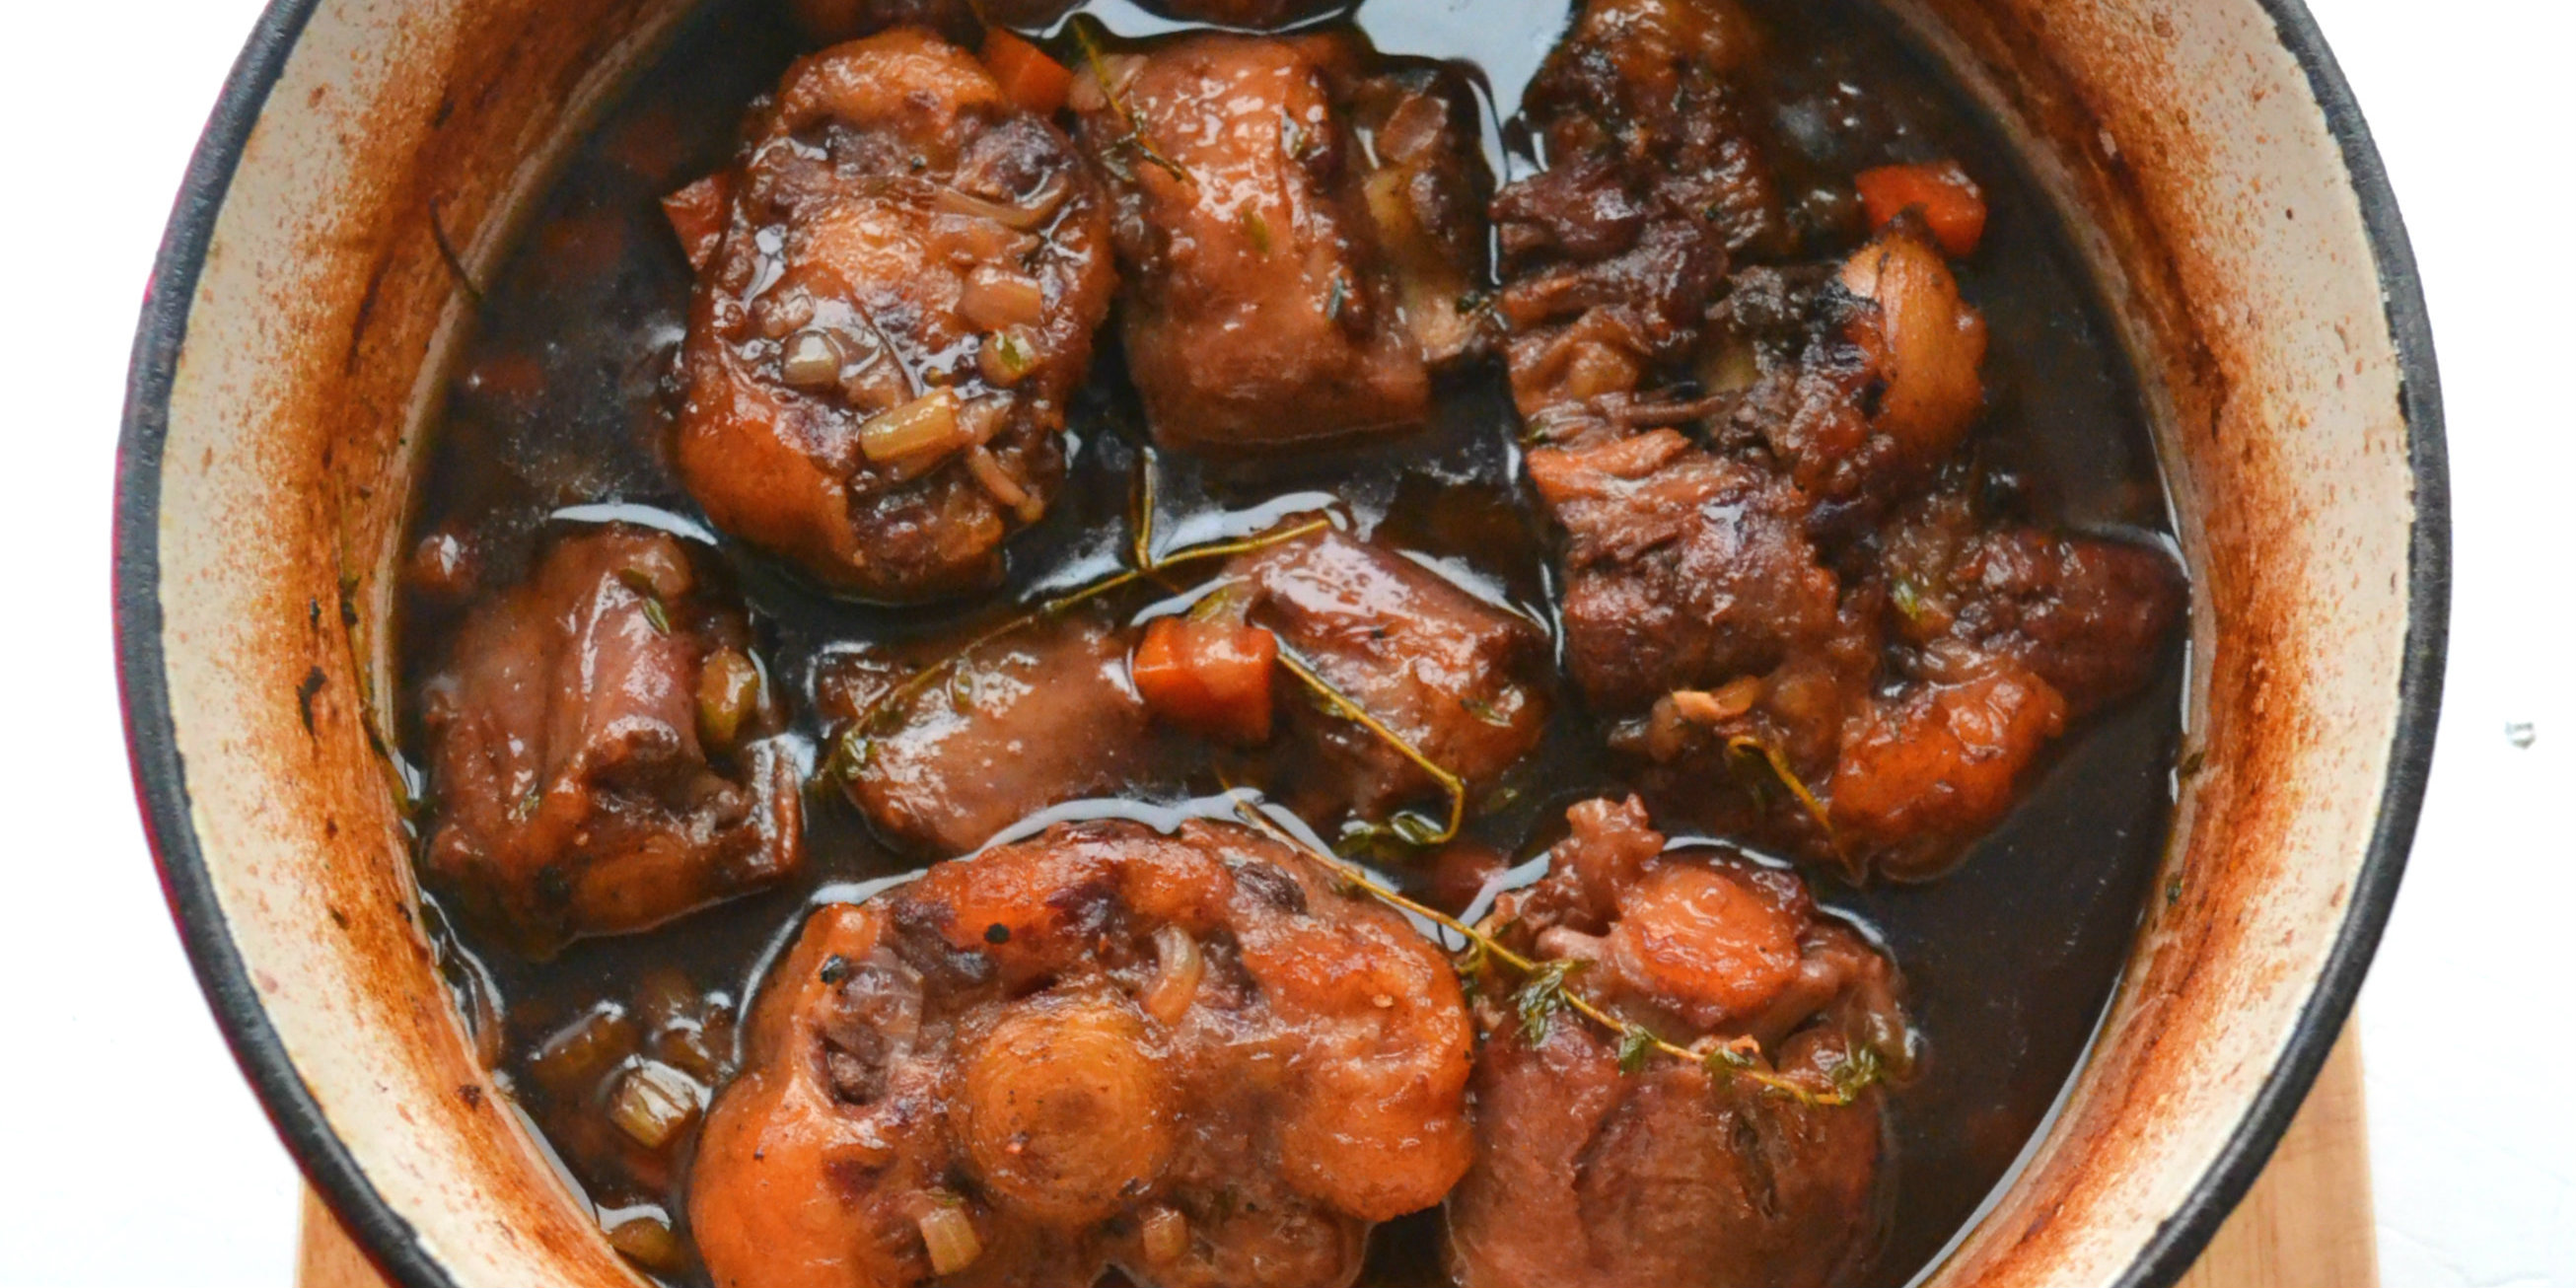 Braised Oxtail and Ale Stew